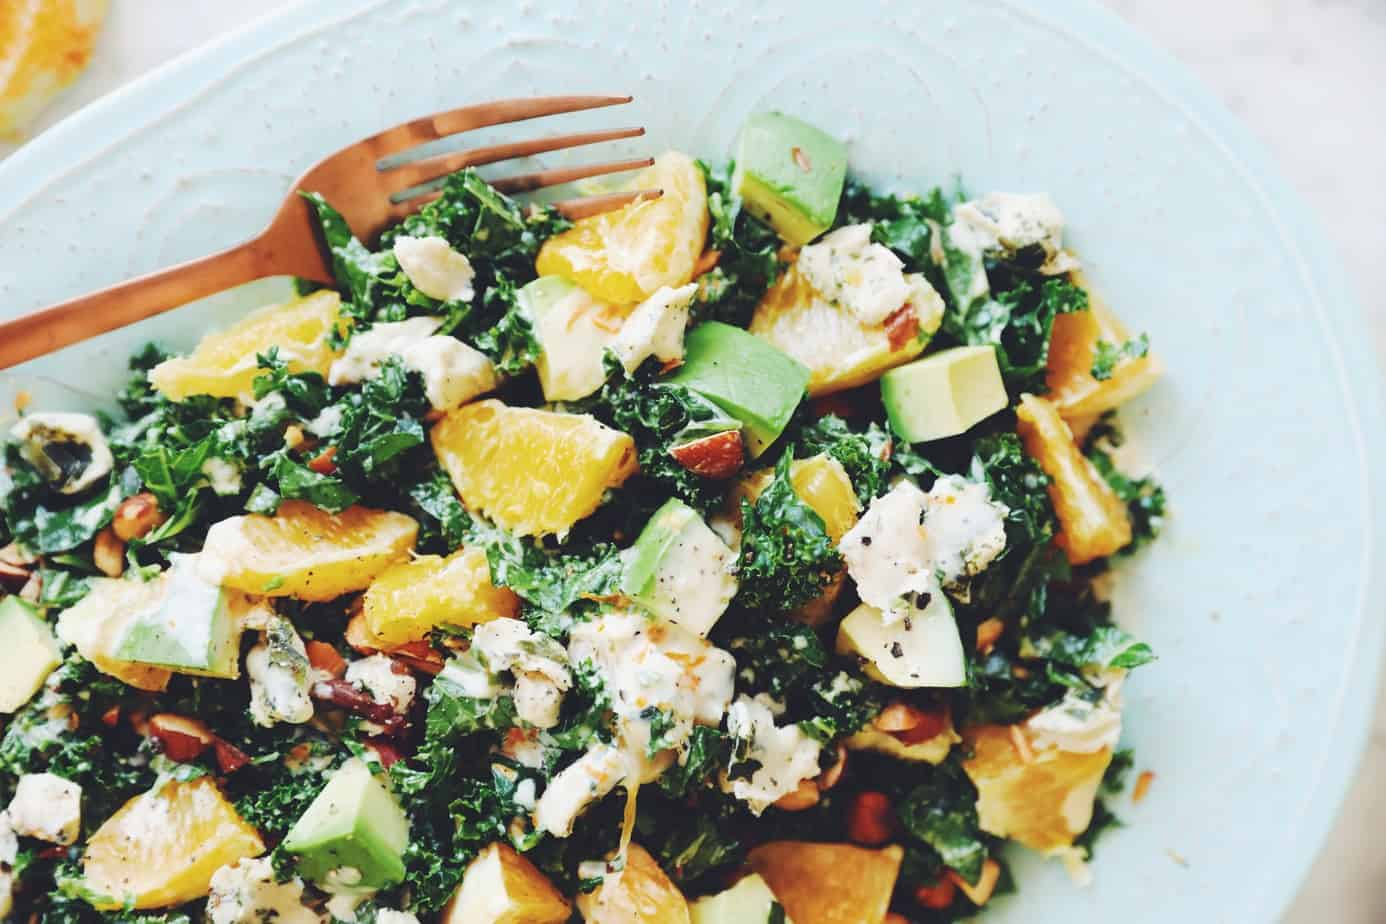 Photo of Kale Avocado Salad with Orange